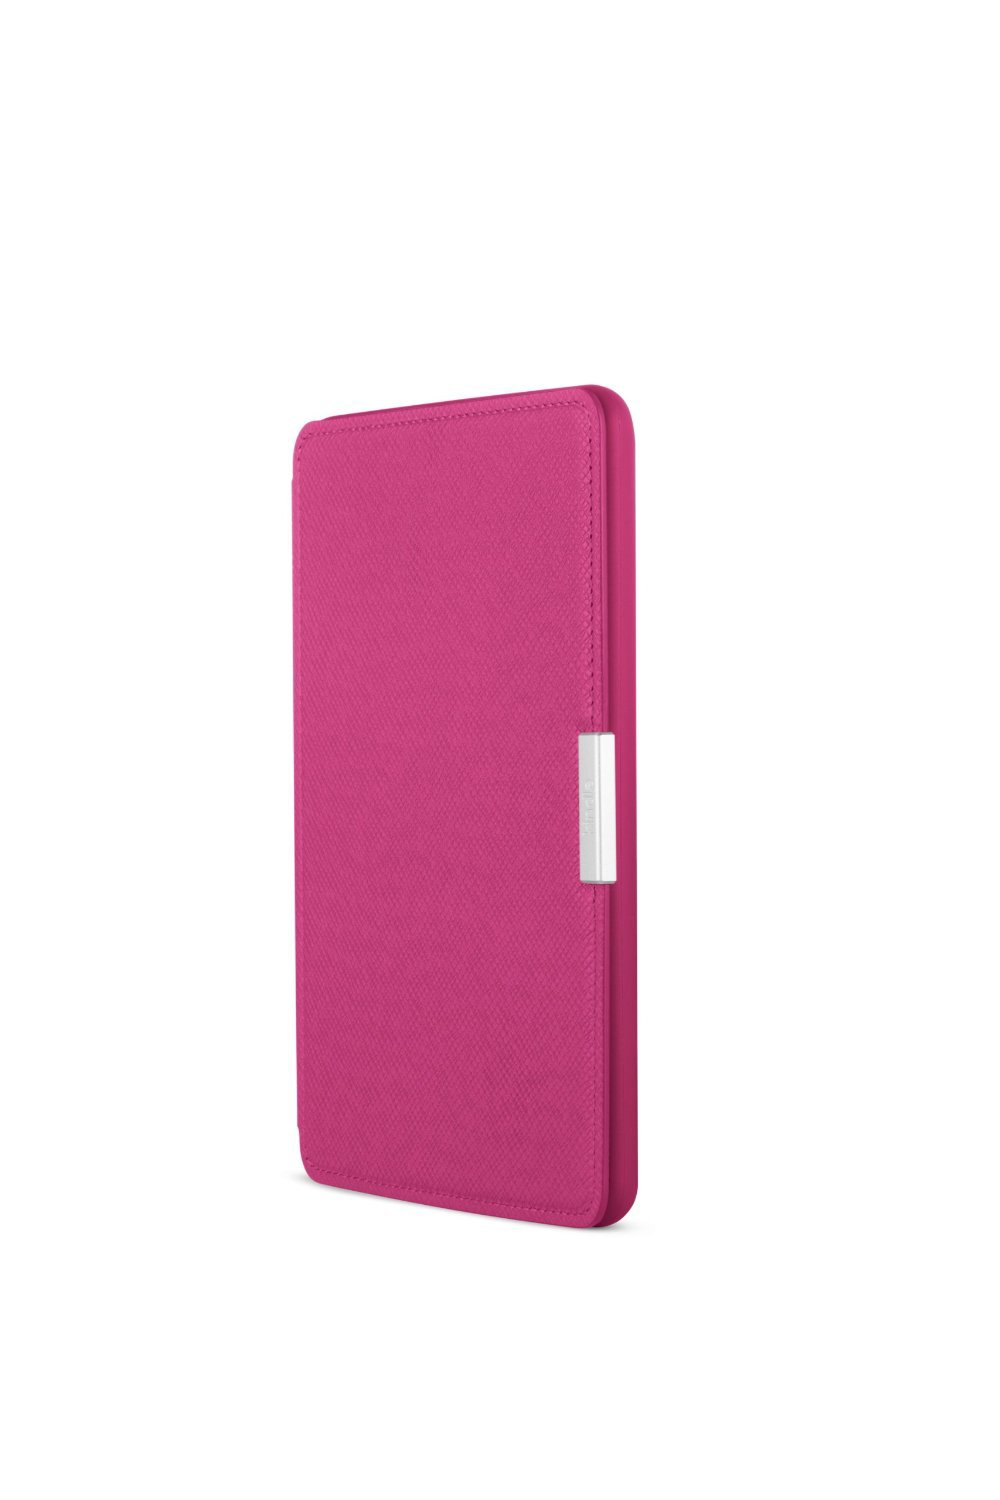 Чехол Leather Cover для Amazon Kindle Paperwhite Fuchsia (Розовый). Фото N4